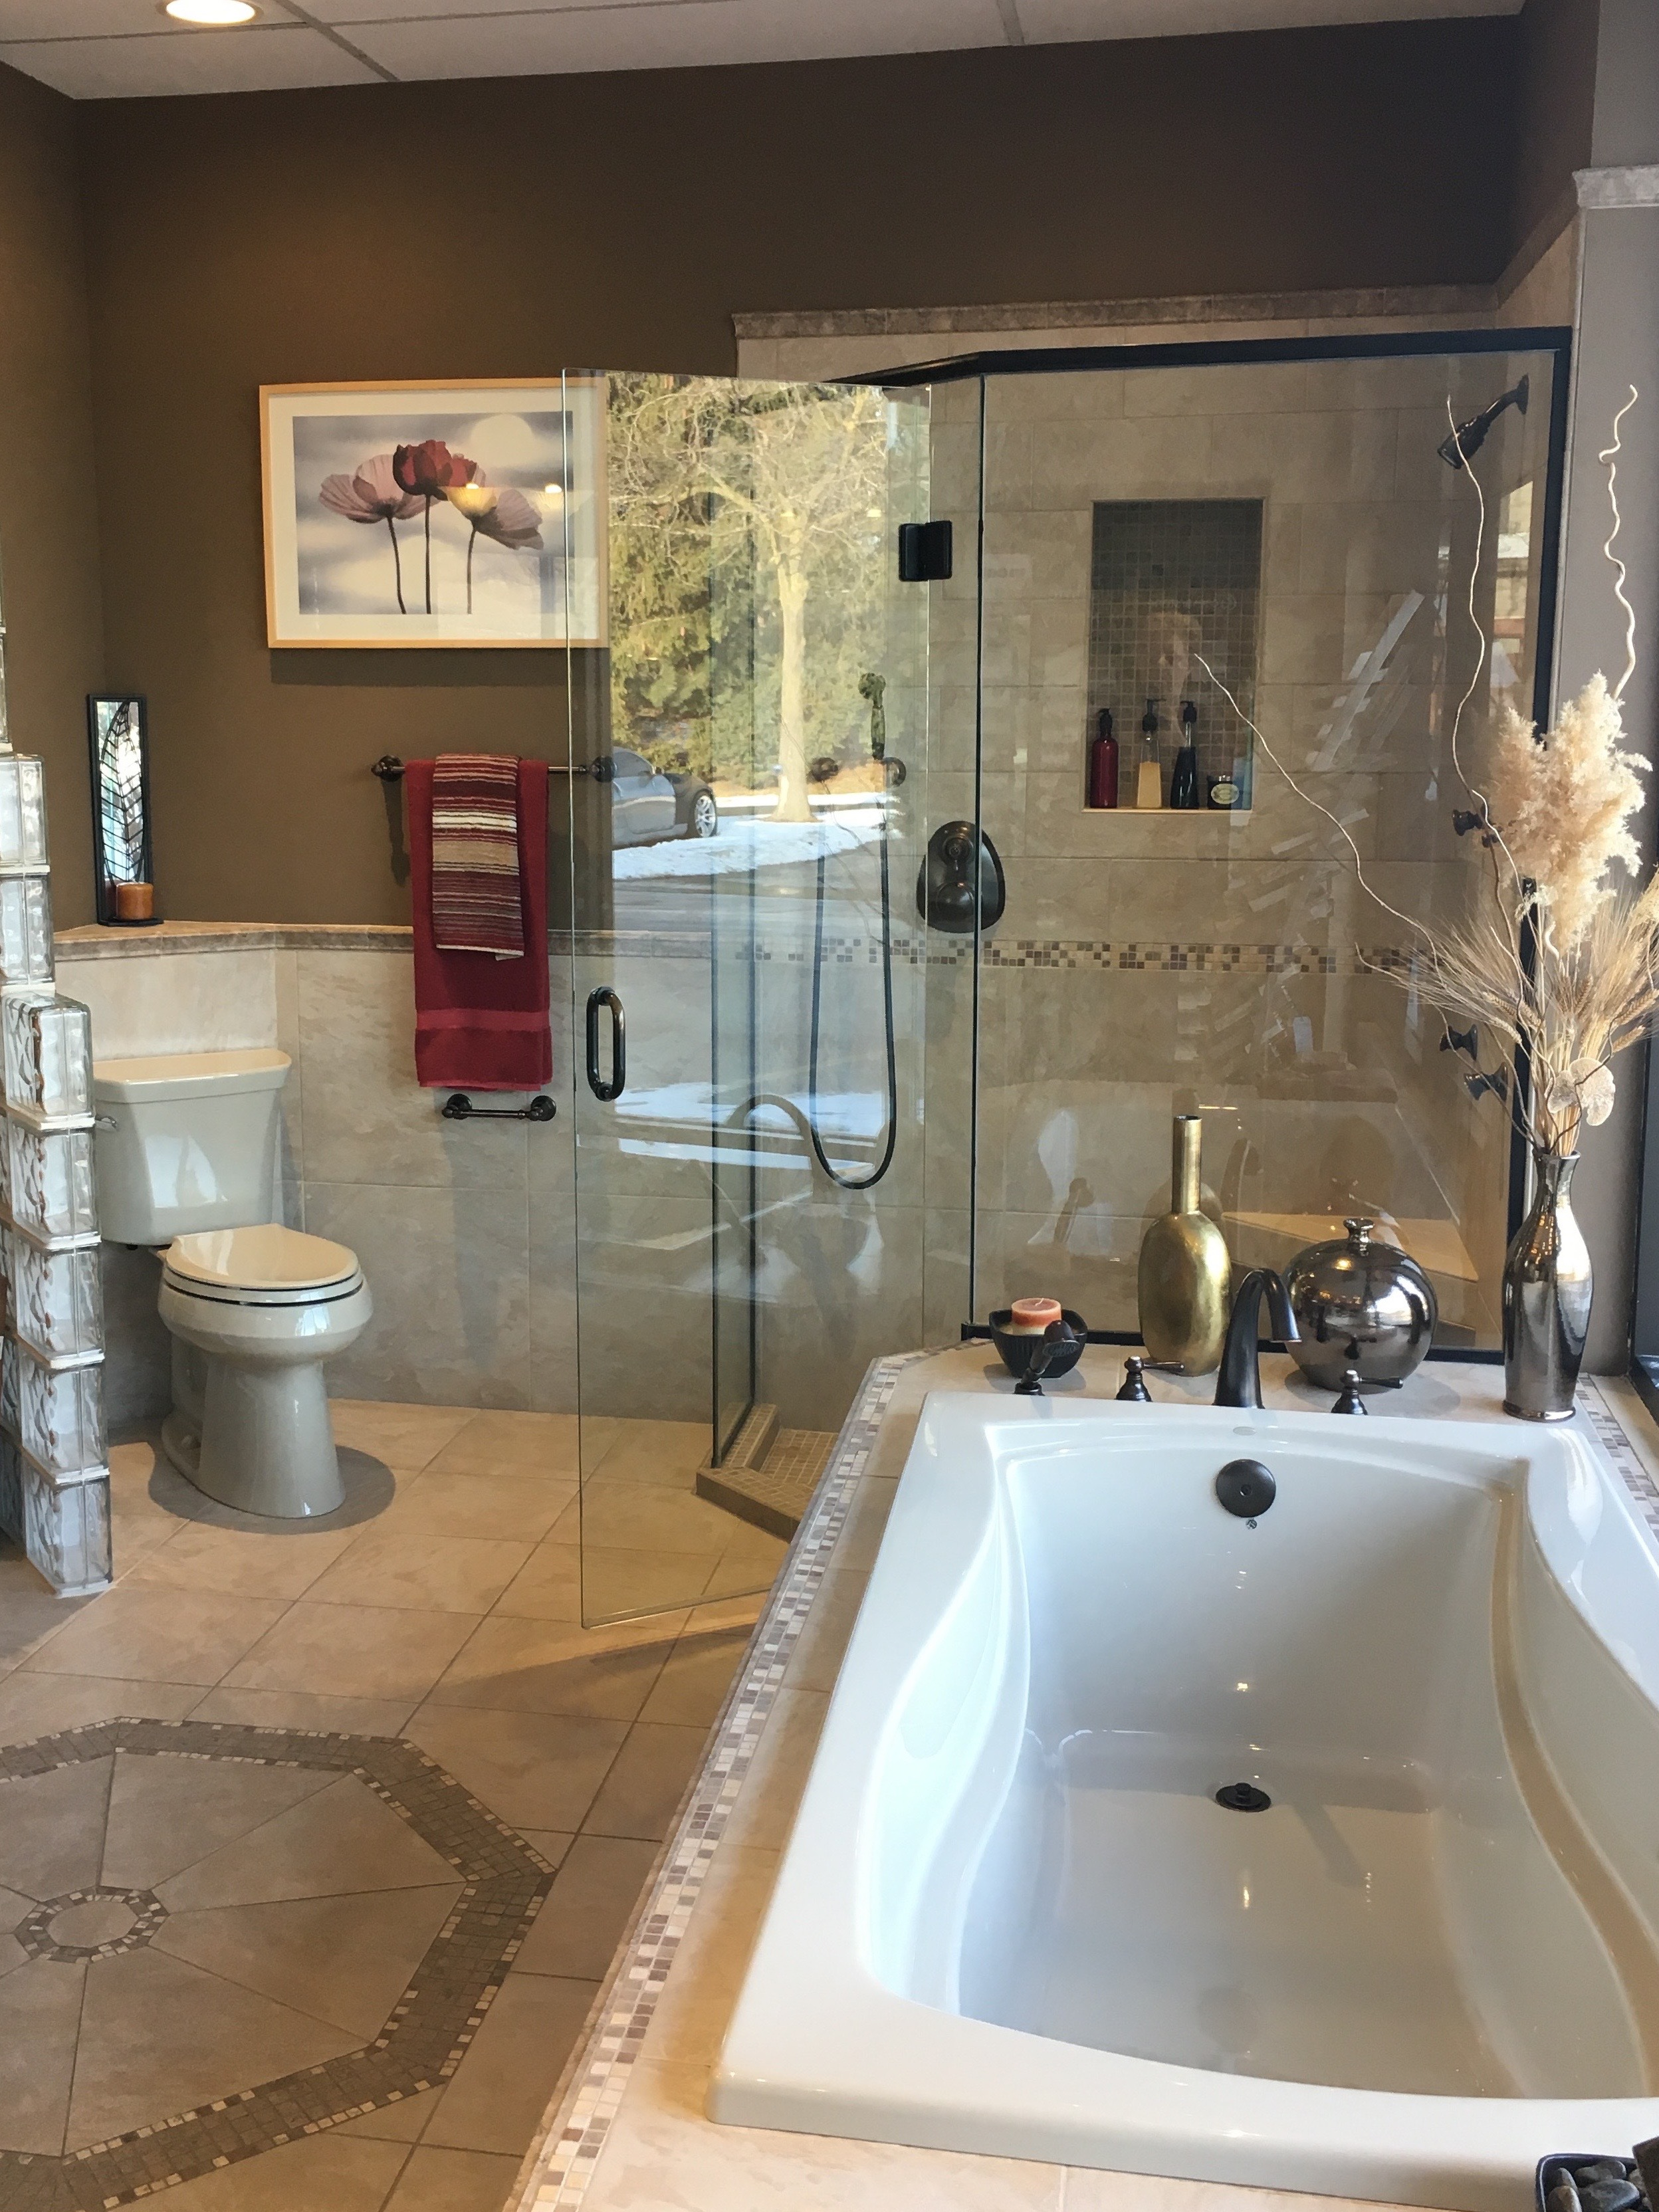 kitchen bathtub awesome and tampa studio takeover photos amazing of bath showroom m fl wool com